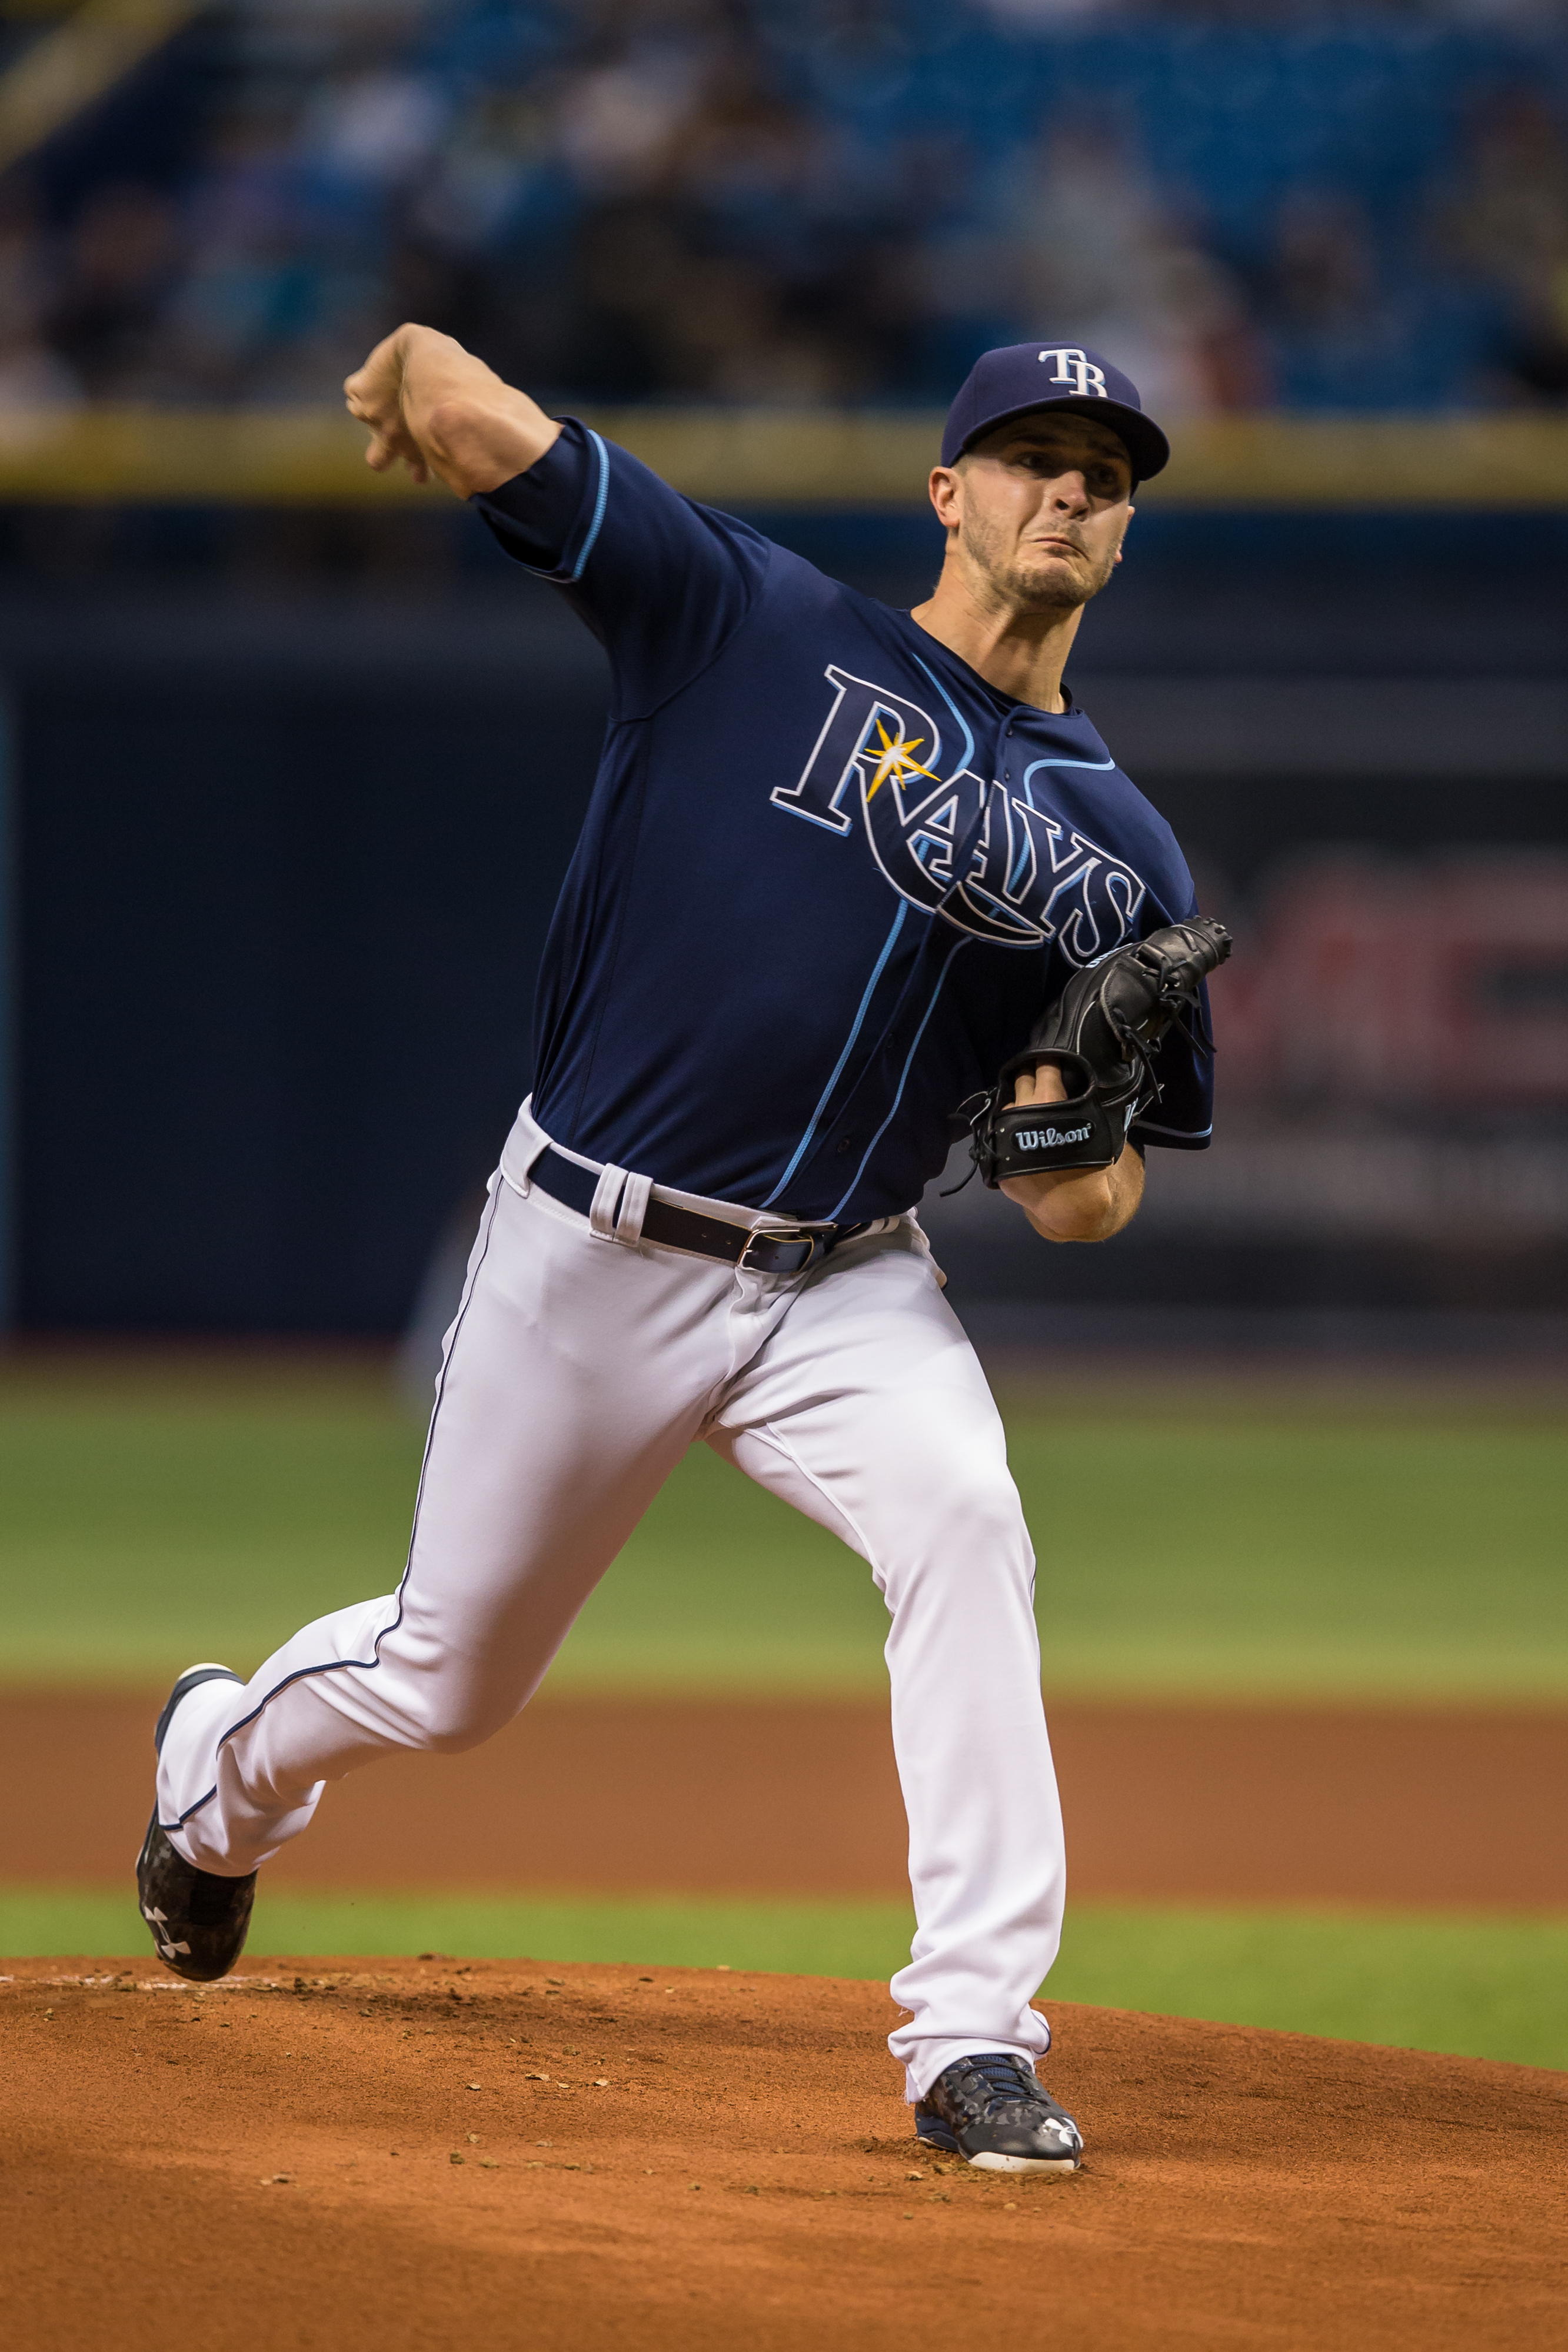 Seven innings of work took the pressure of the Rays' bullpen./ANDREW J. KRAMER